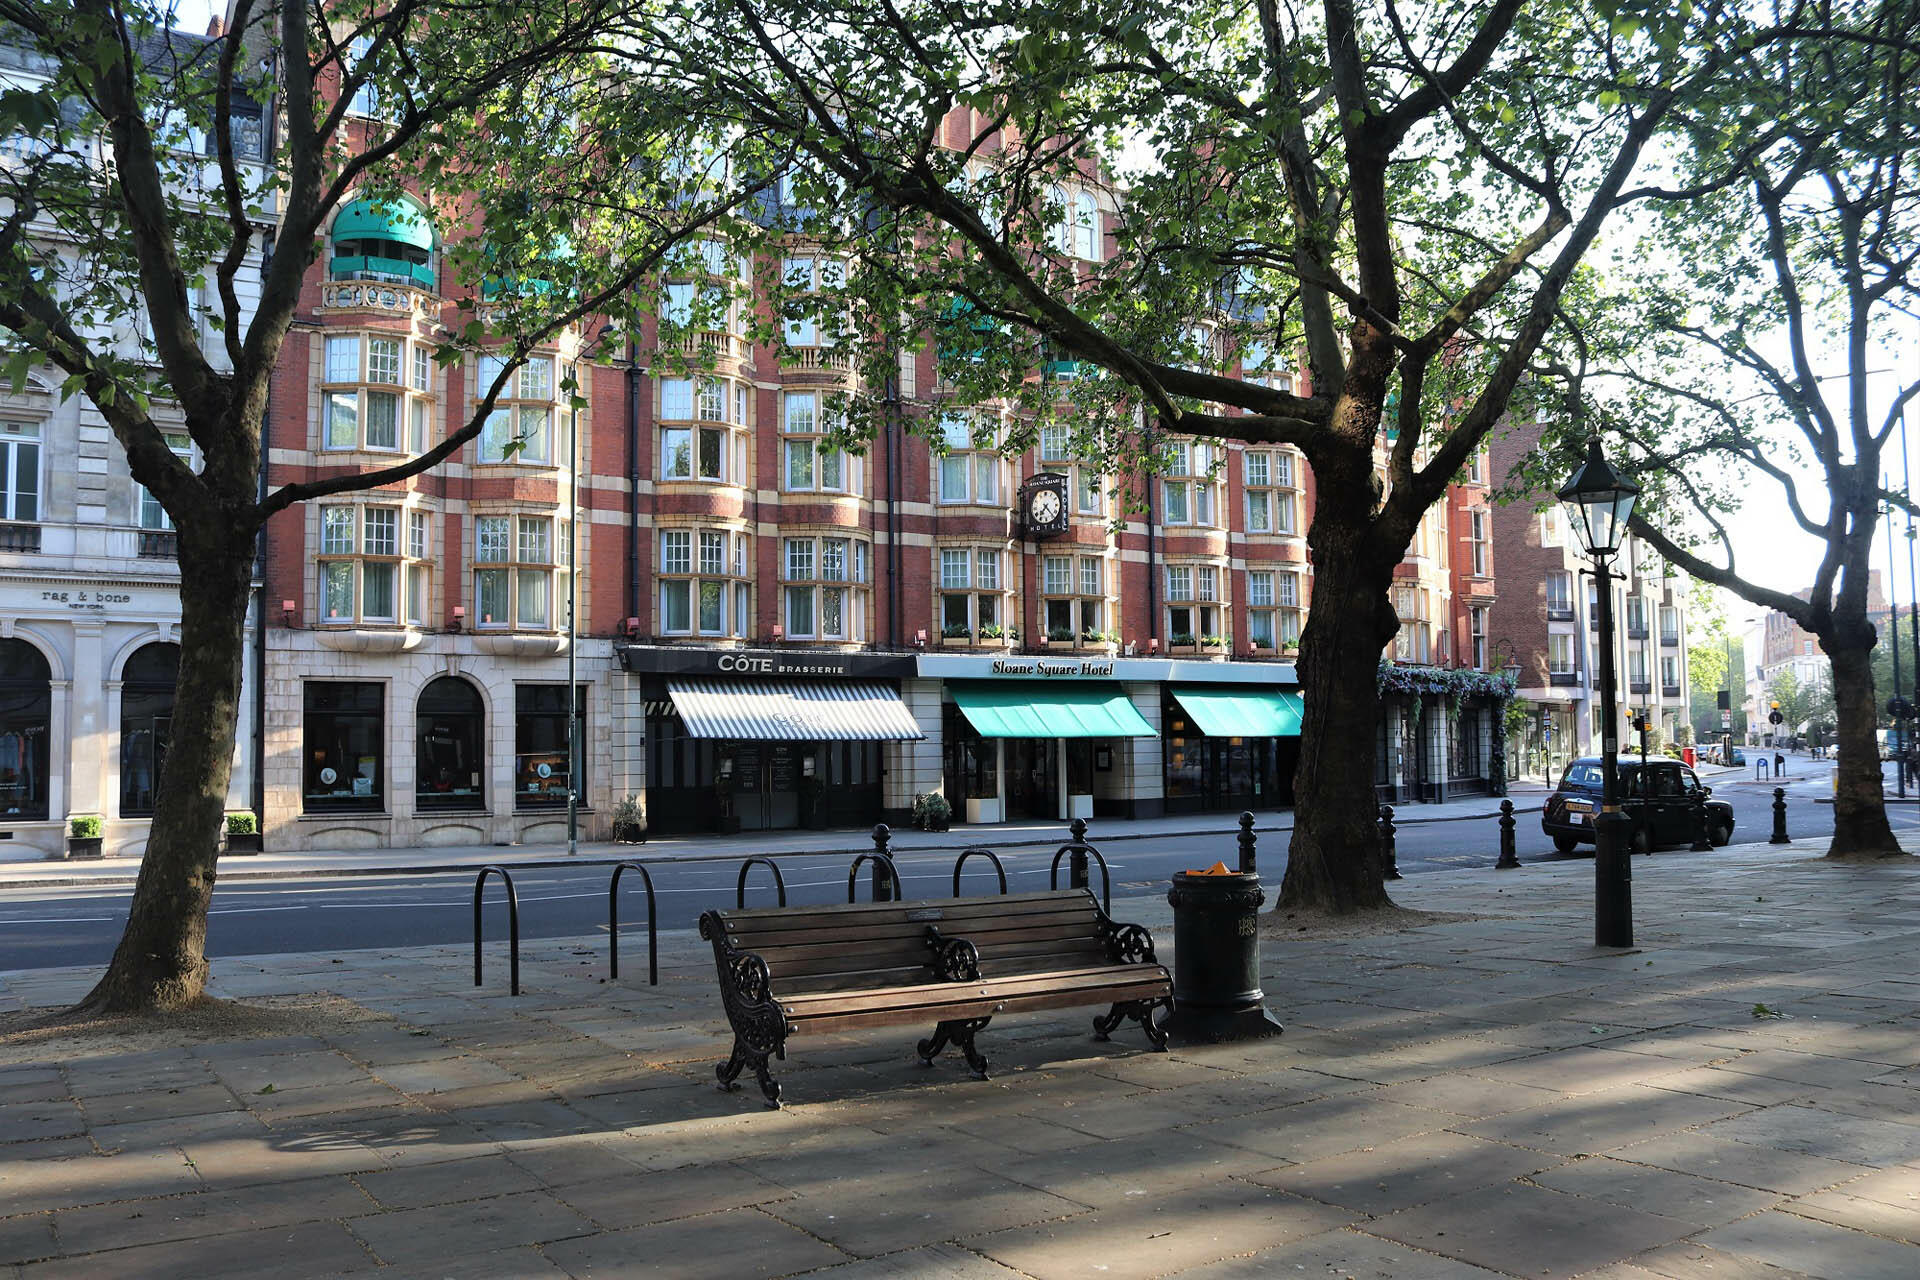 Exterior speing view from the square at Sloane Square Hotel